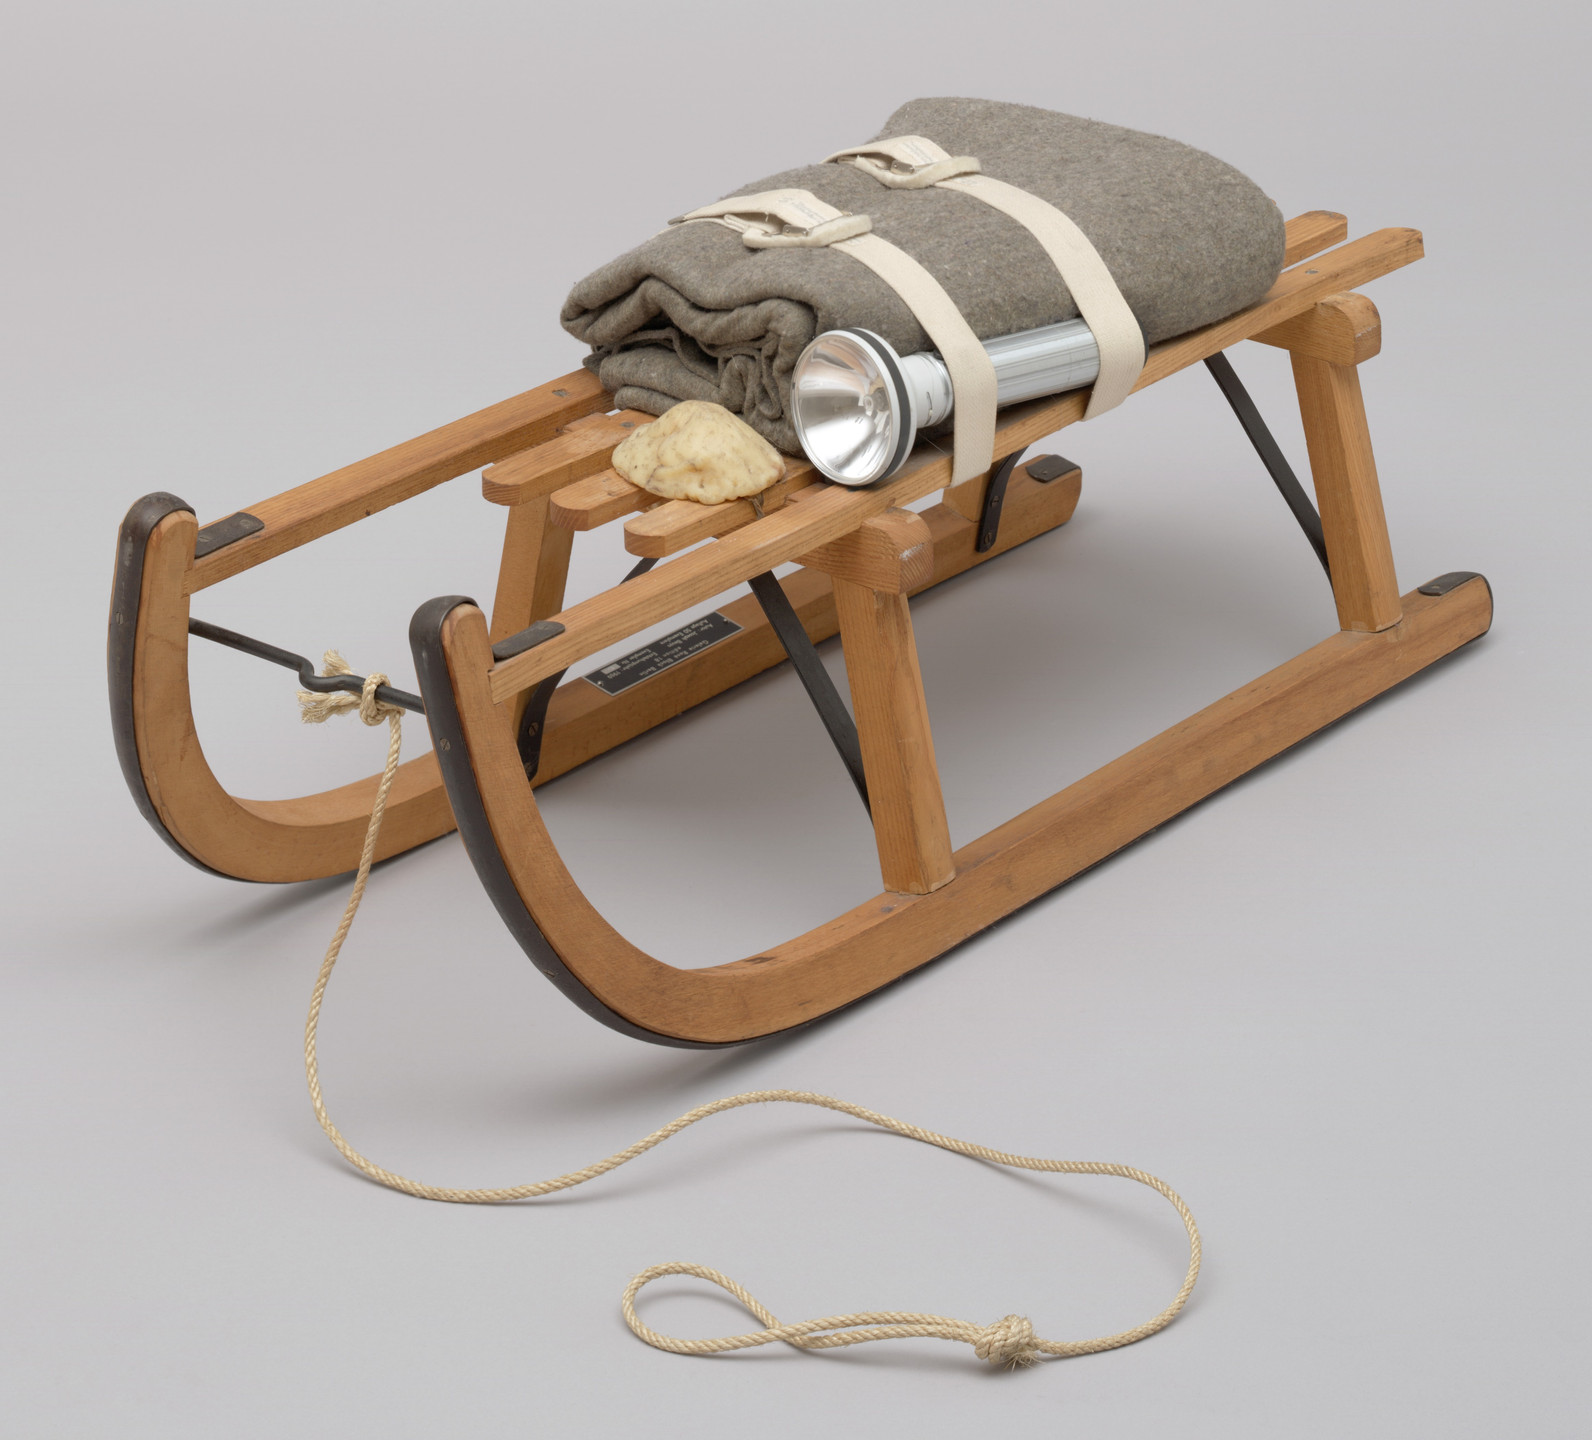 Joseph Beuys. The Sled. 1969